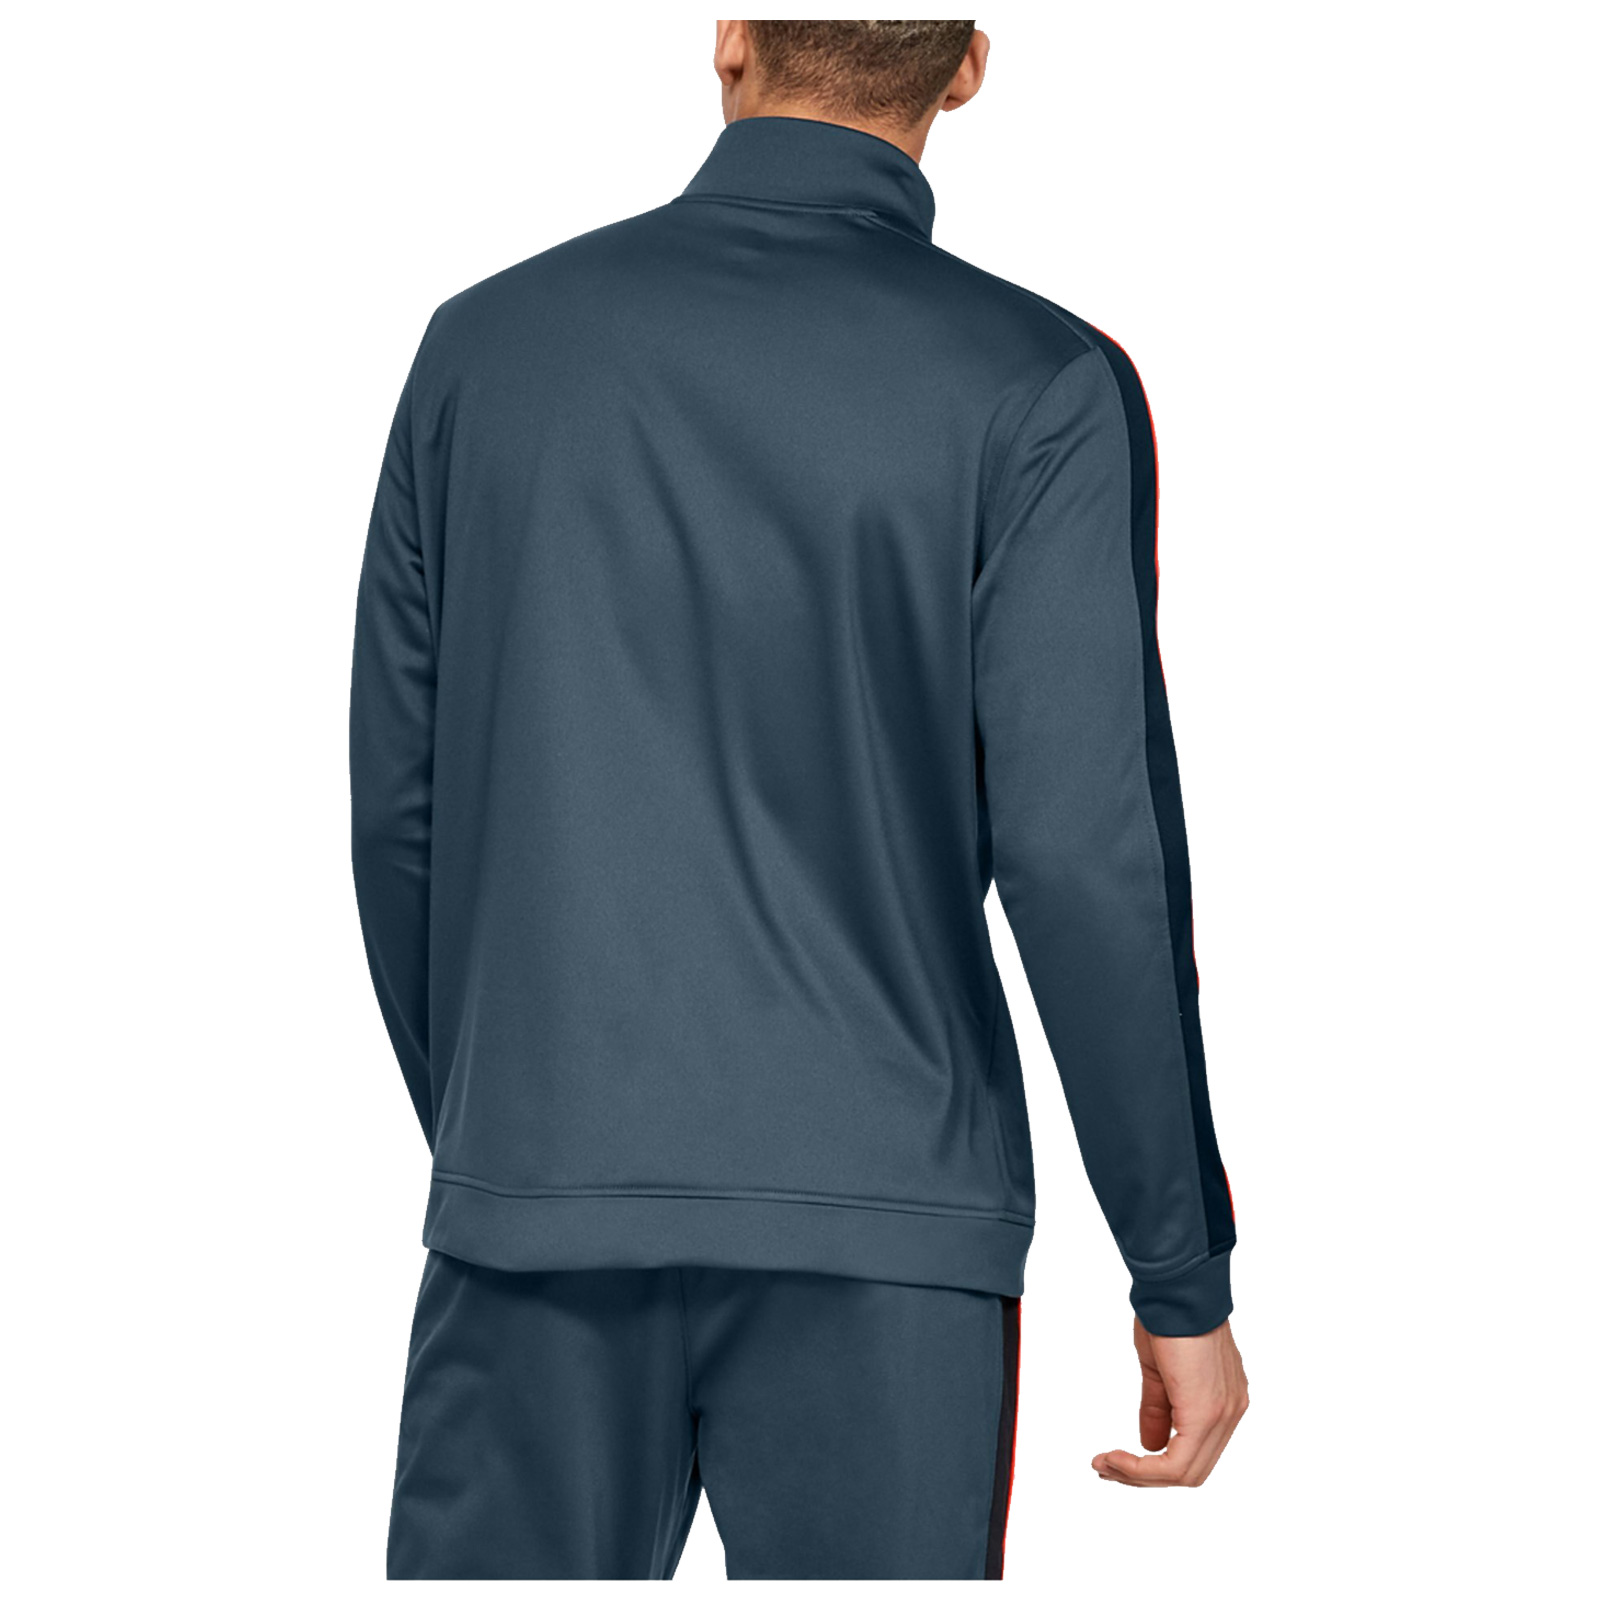 2020 Under Armour Mens Unstoppable Essential Track Jacket UA Gym Training Top